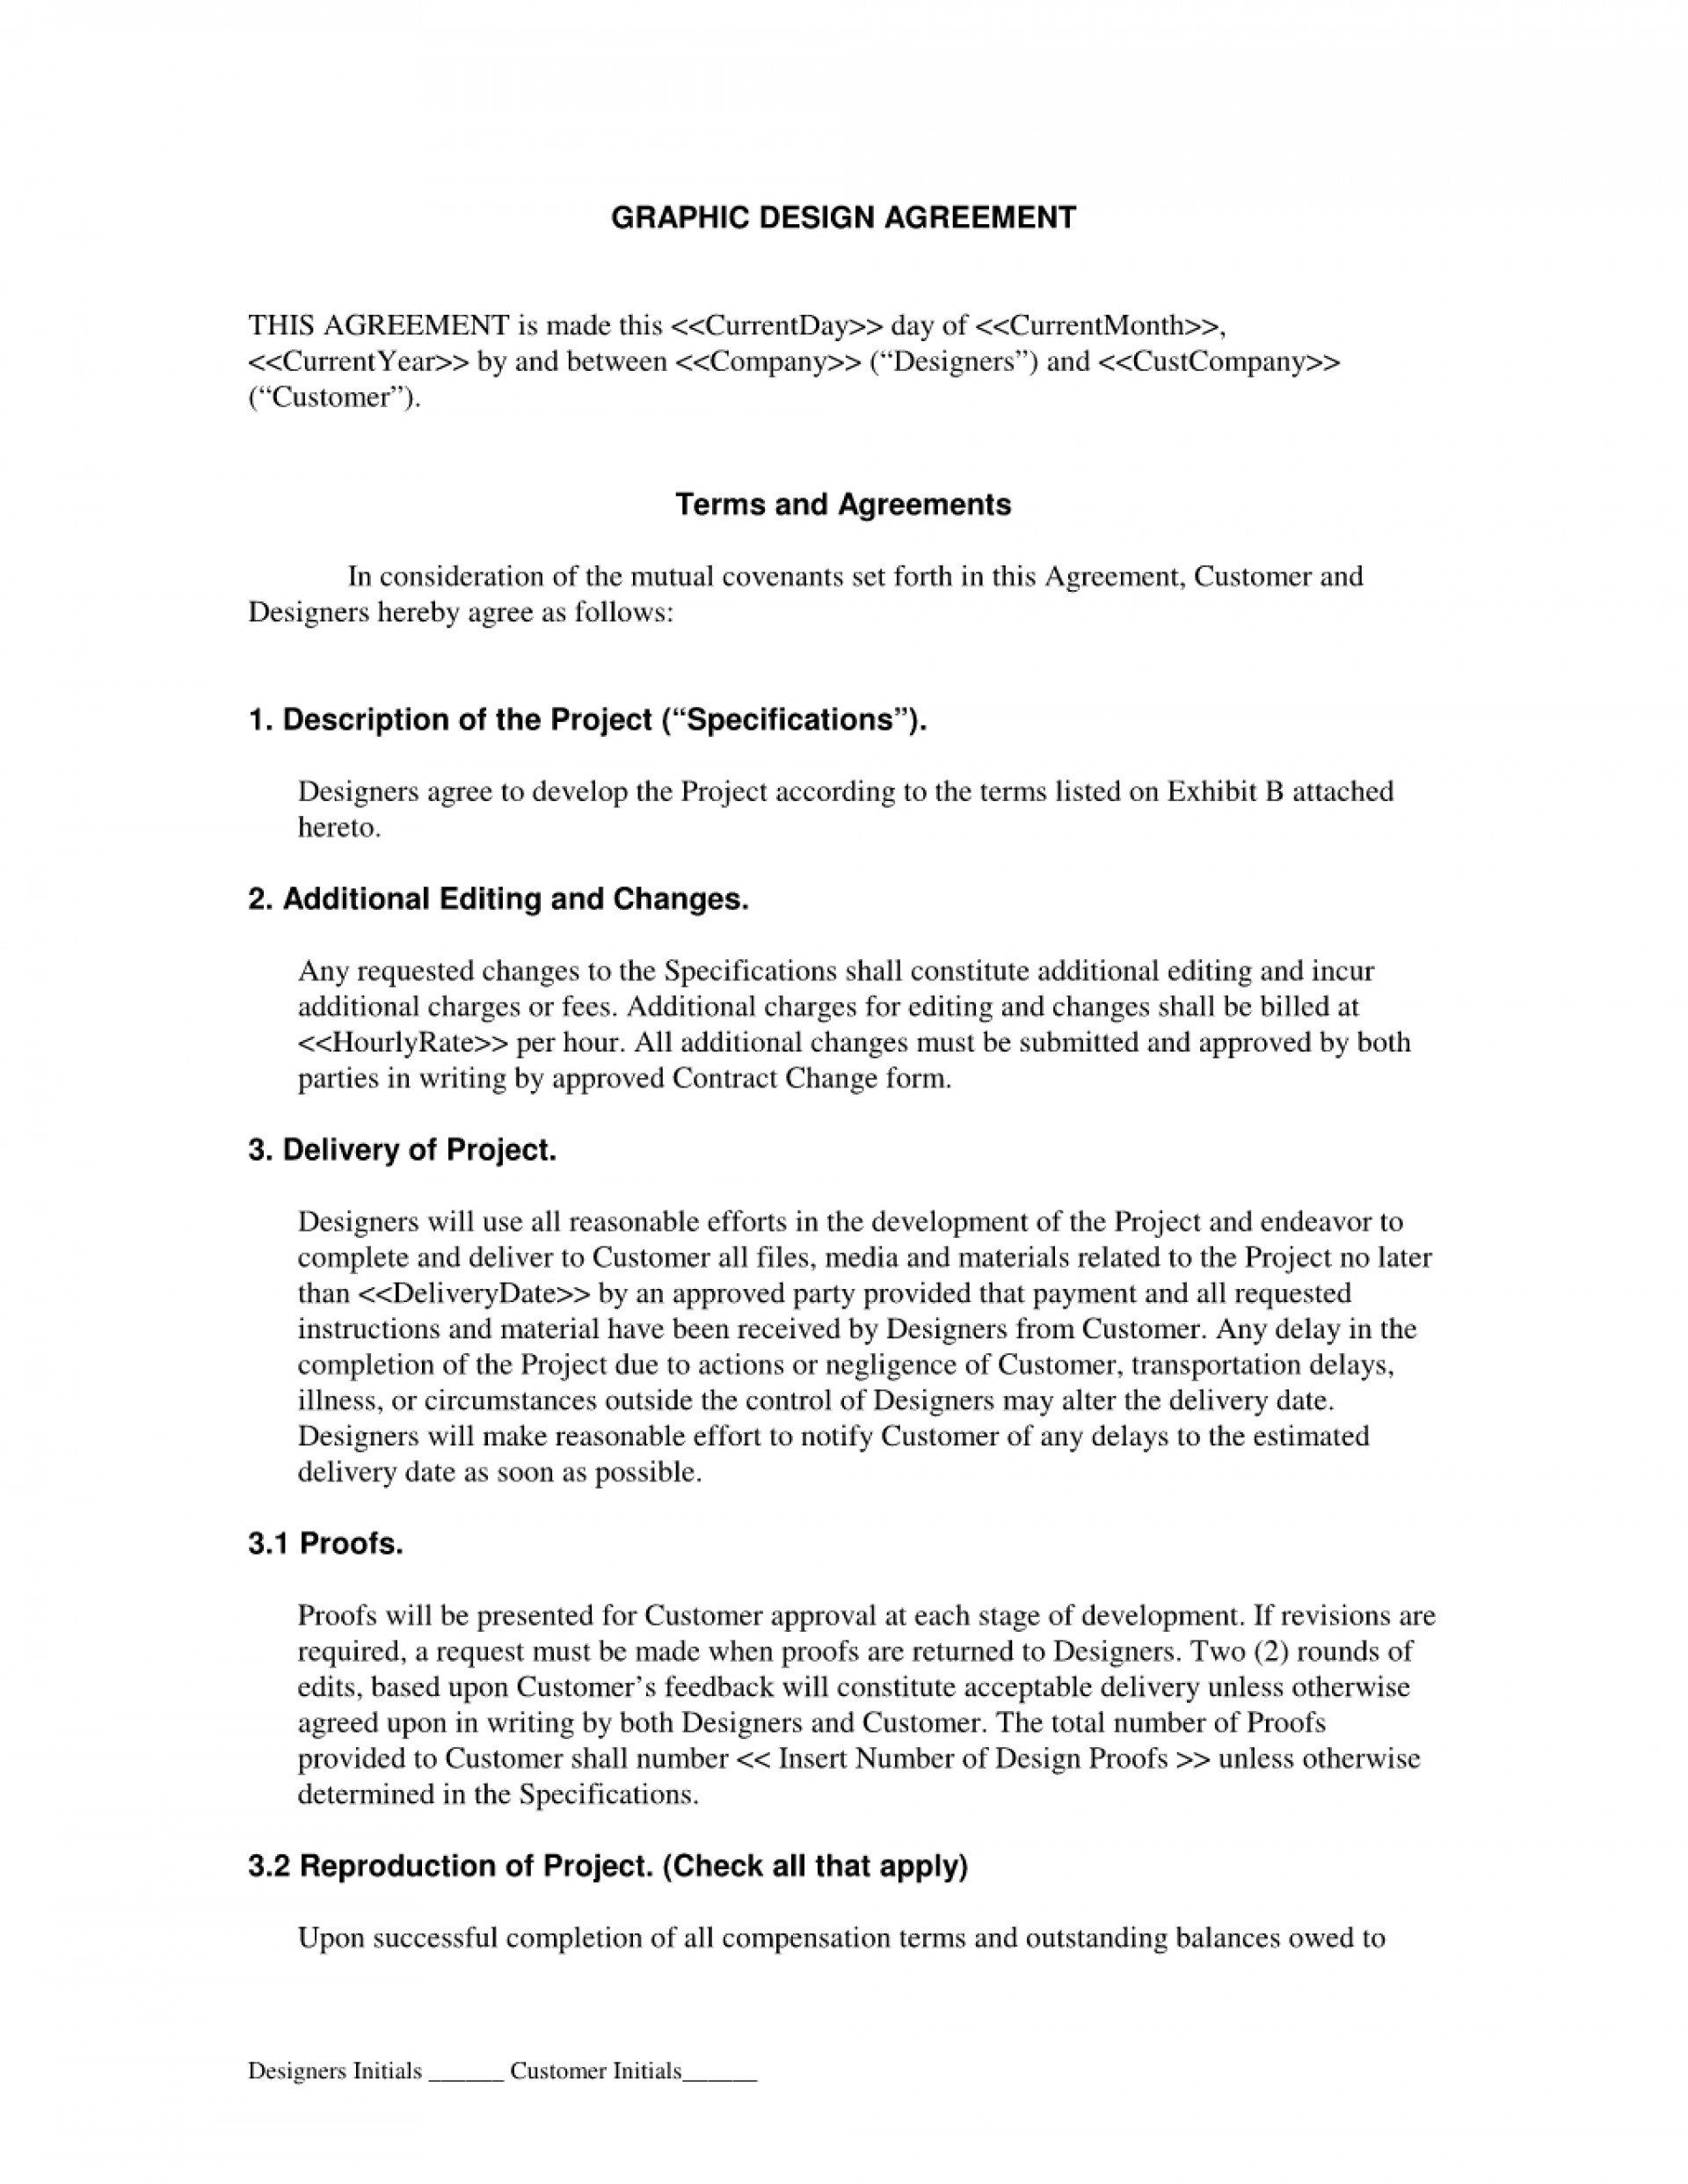 Graphic Design Contract Template Pdf Ideas Logo Agreement Throughout Design Retainer Agreement Templates